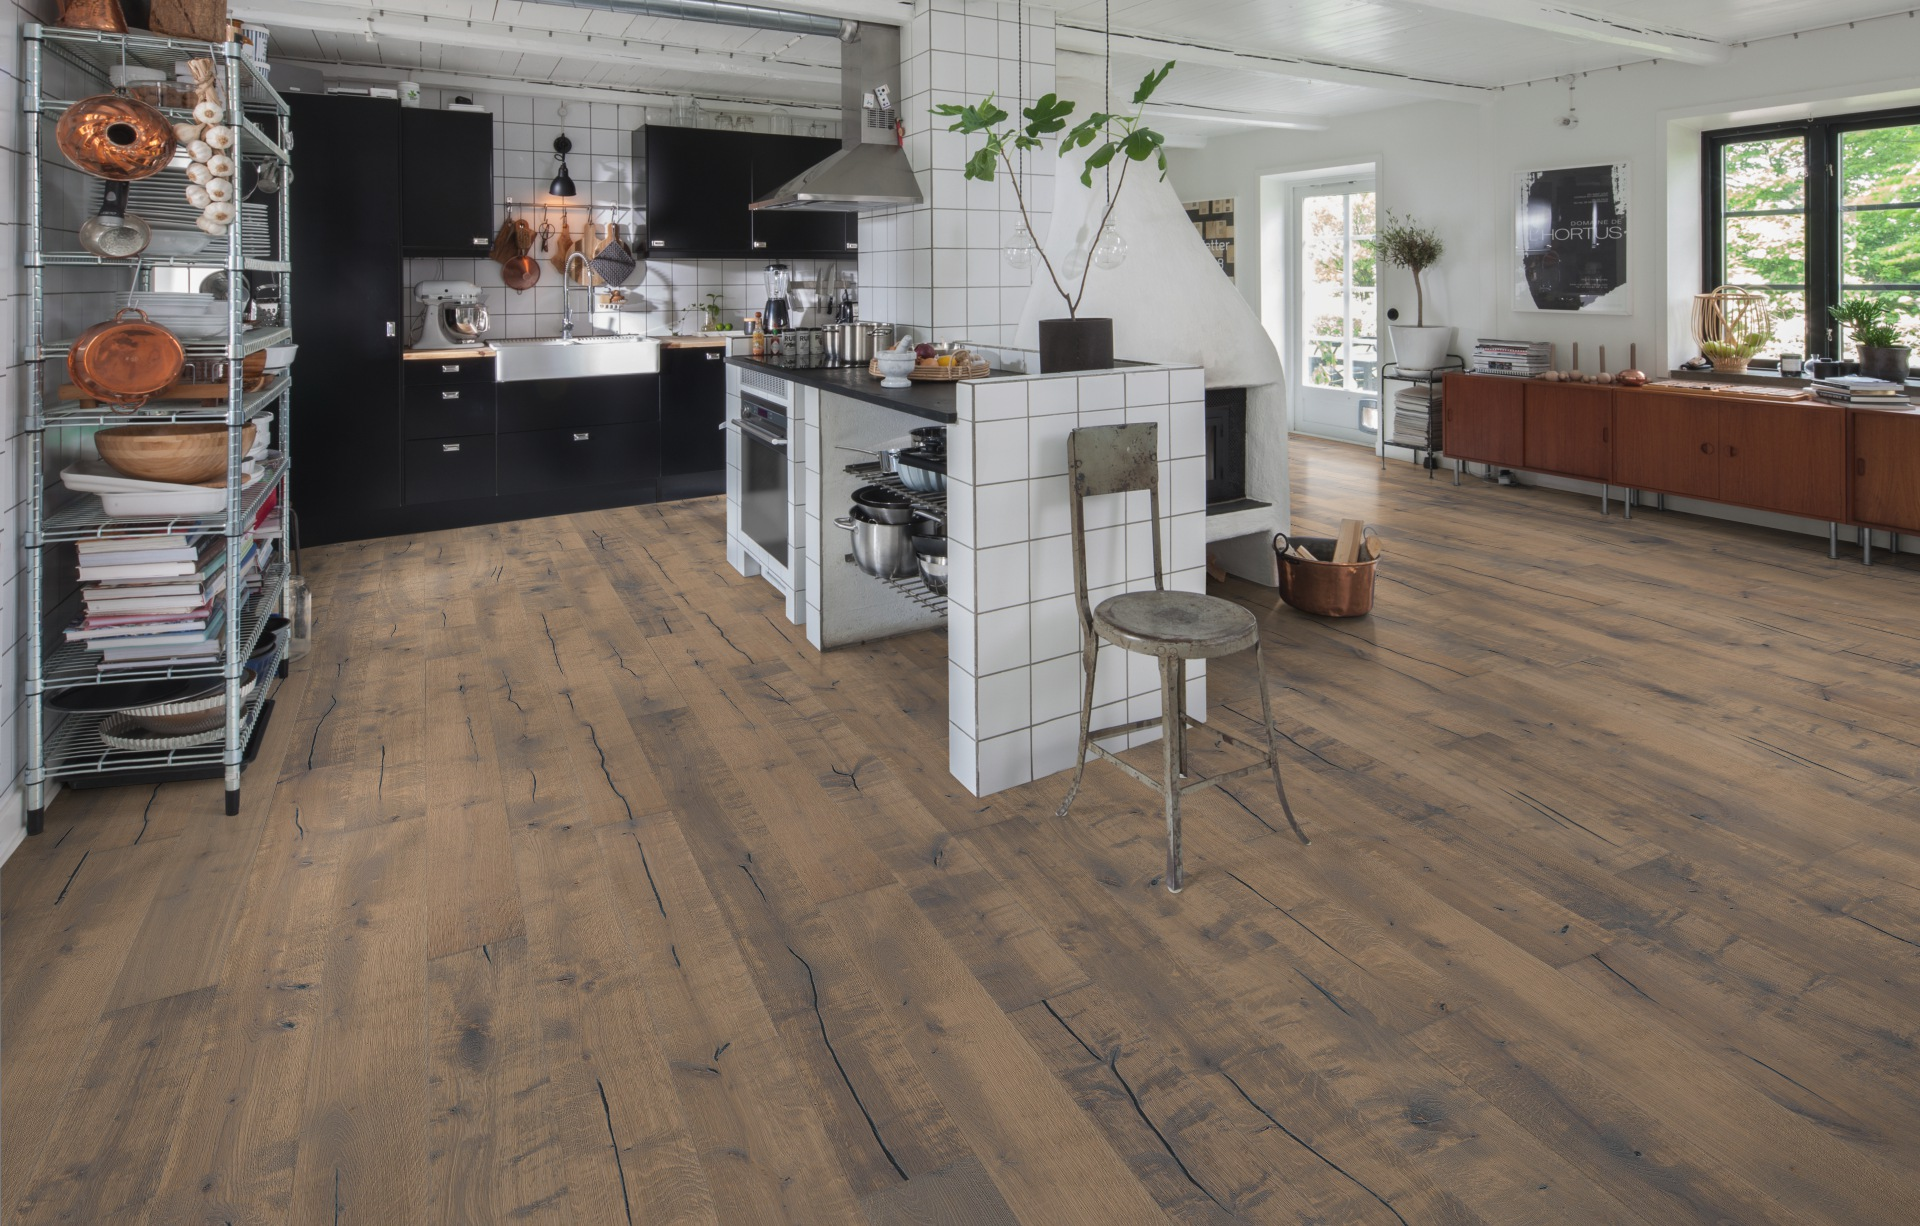 kahrs oak handbord engineered wood flooring. Black Bedroom Furniture Sets. Home Design Ideas